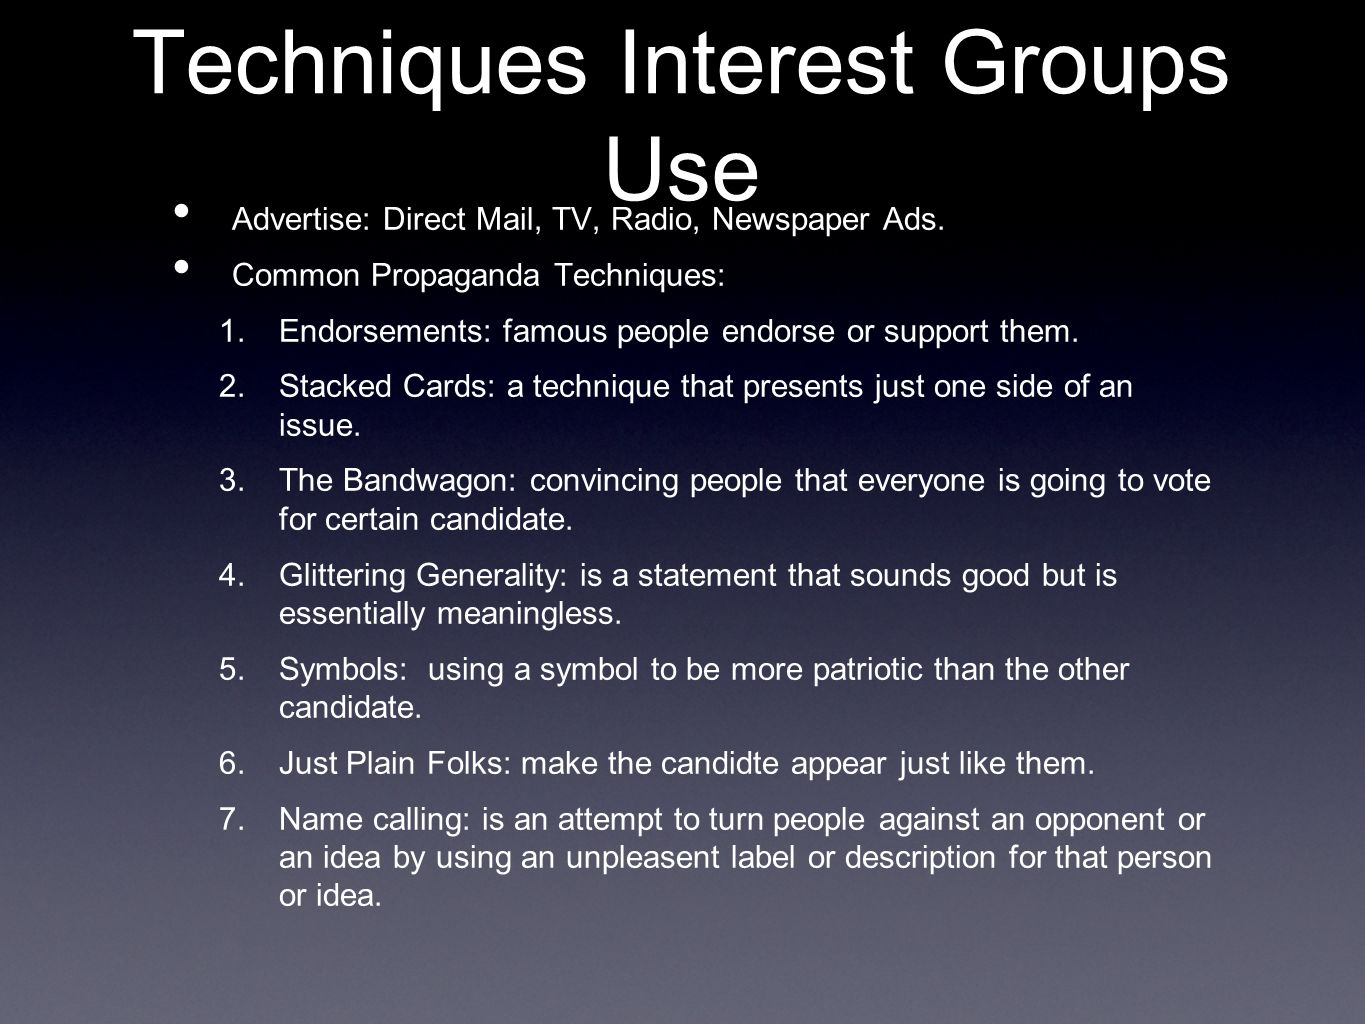 direct techniques used by interest groups